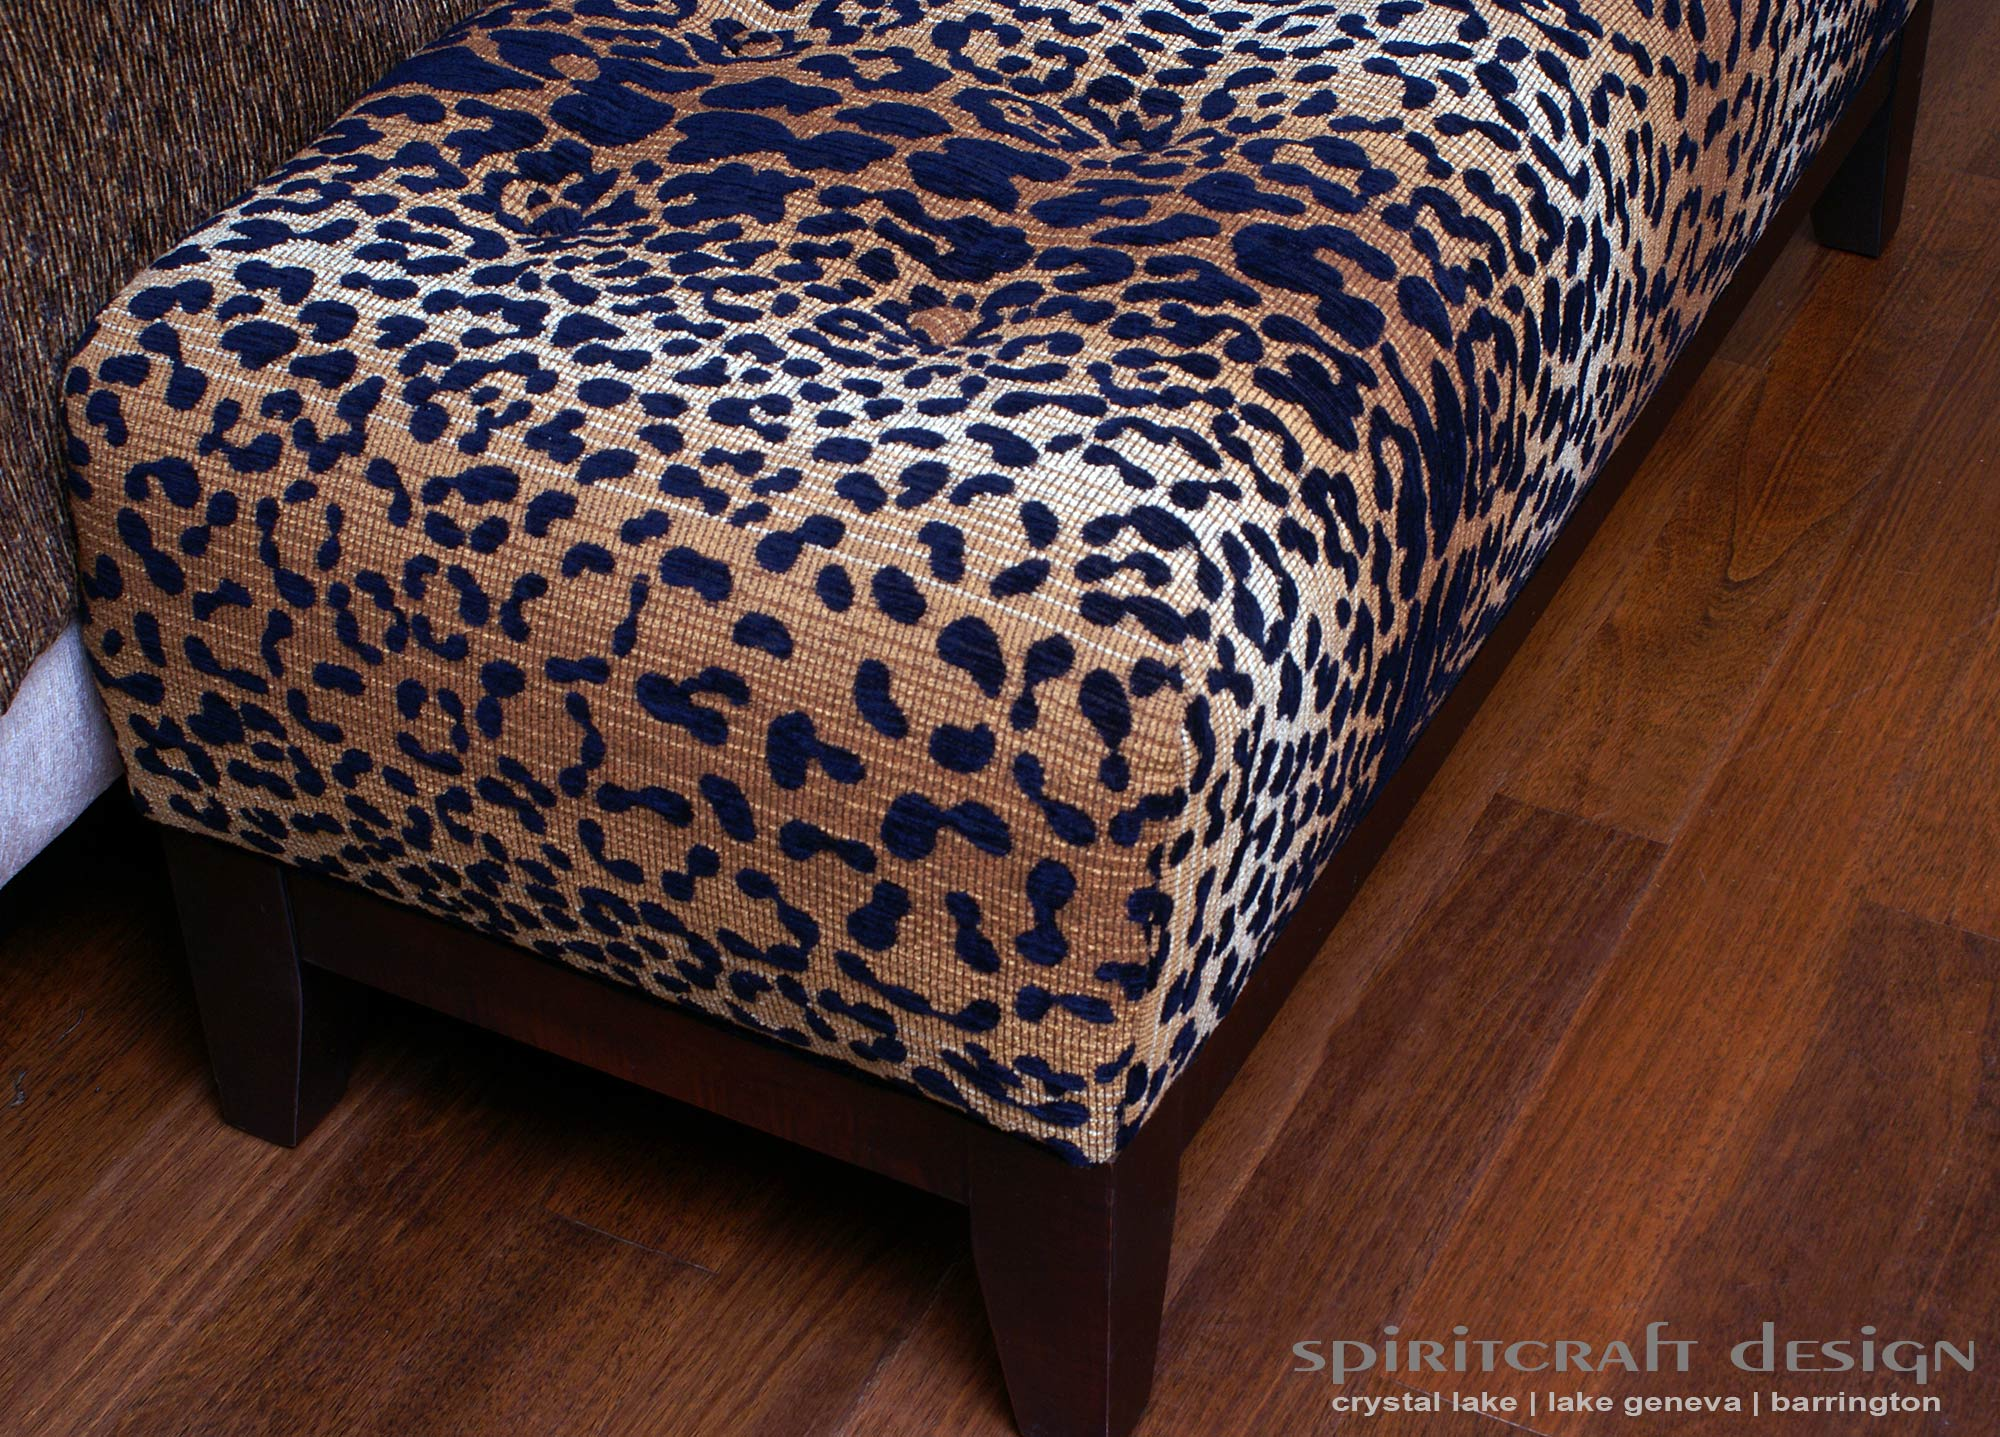 Custom Upholstered Bedroom Bench In Lincoln Park By Spiritcraft Interior  Design Of Crystal Lake And Barrington